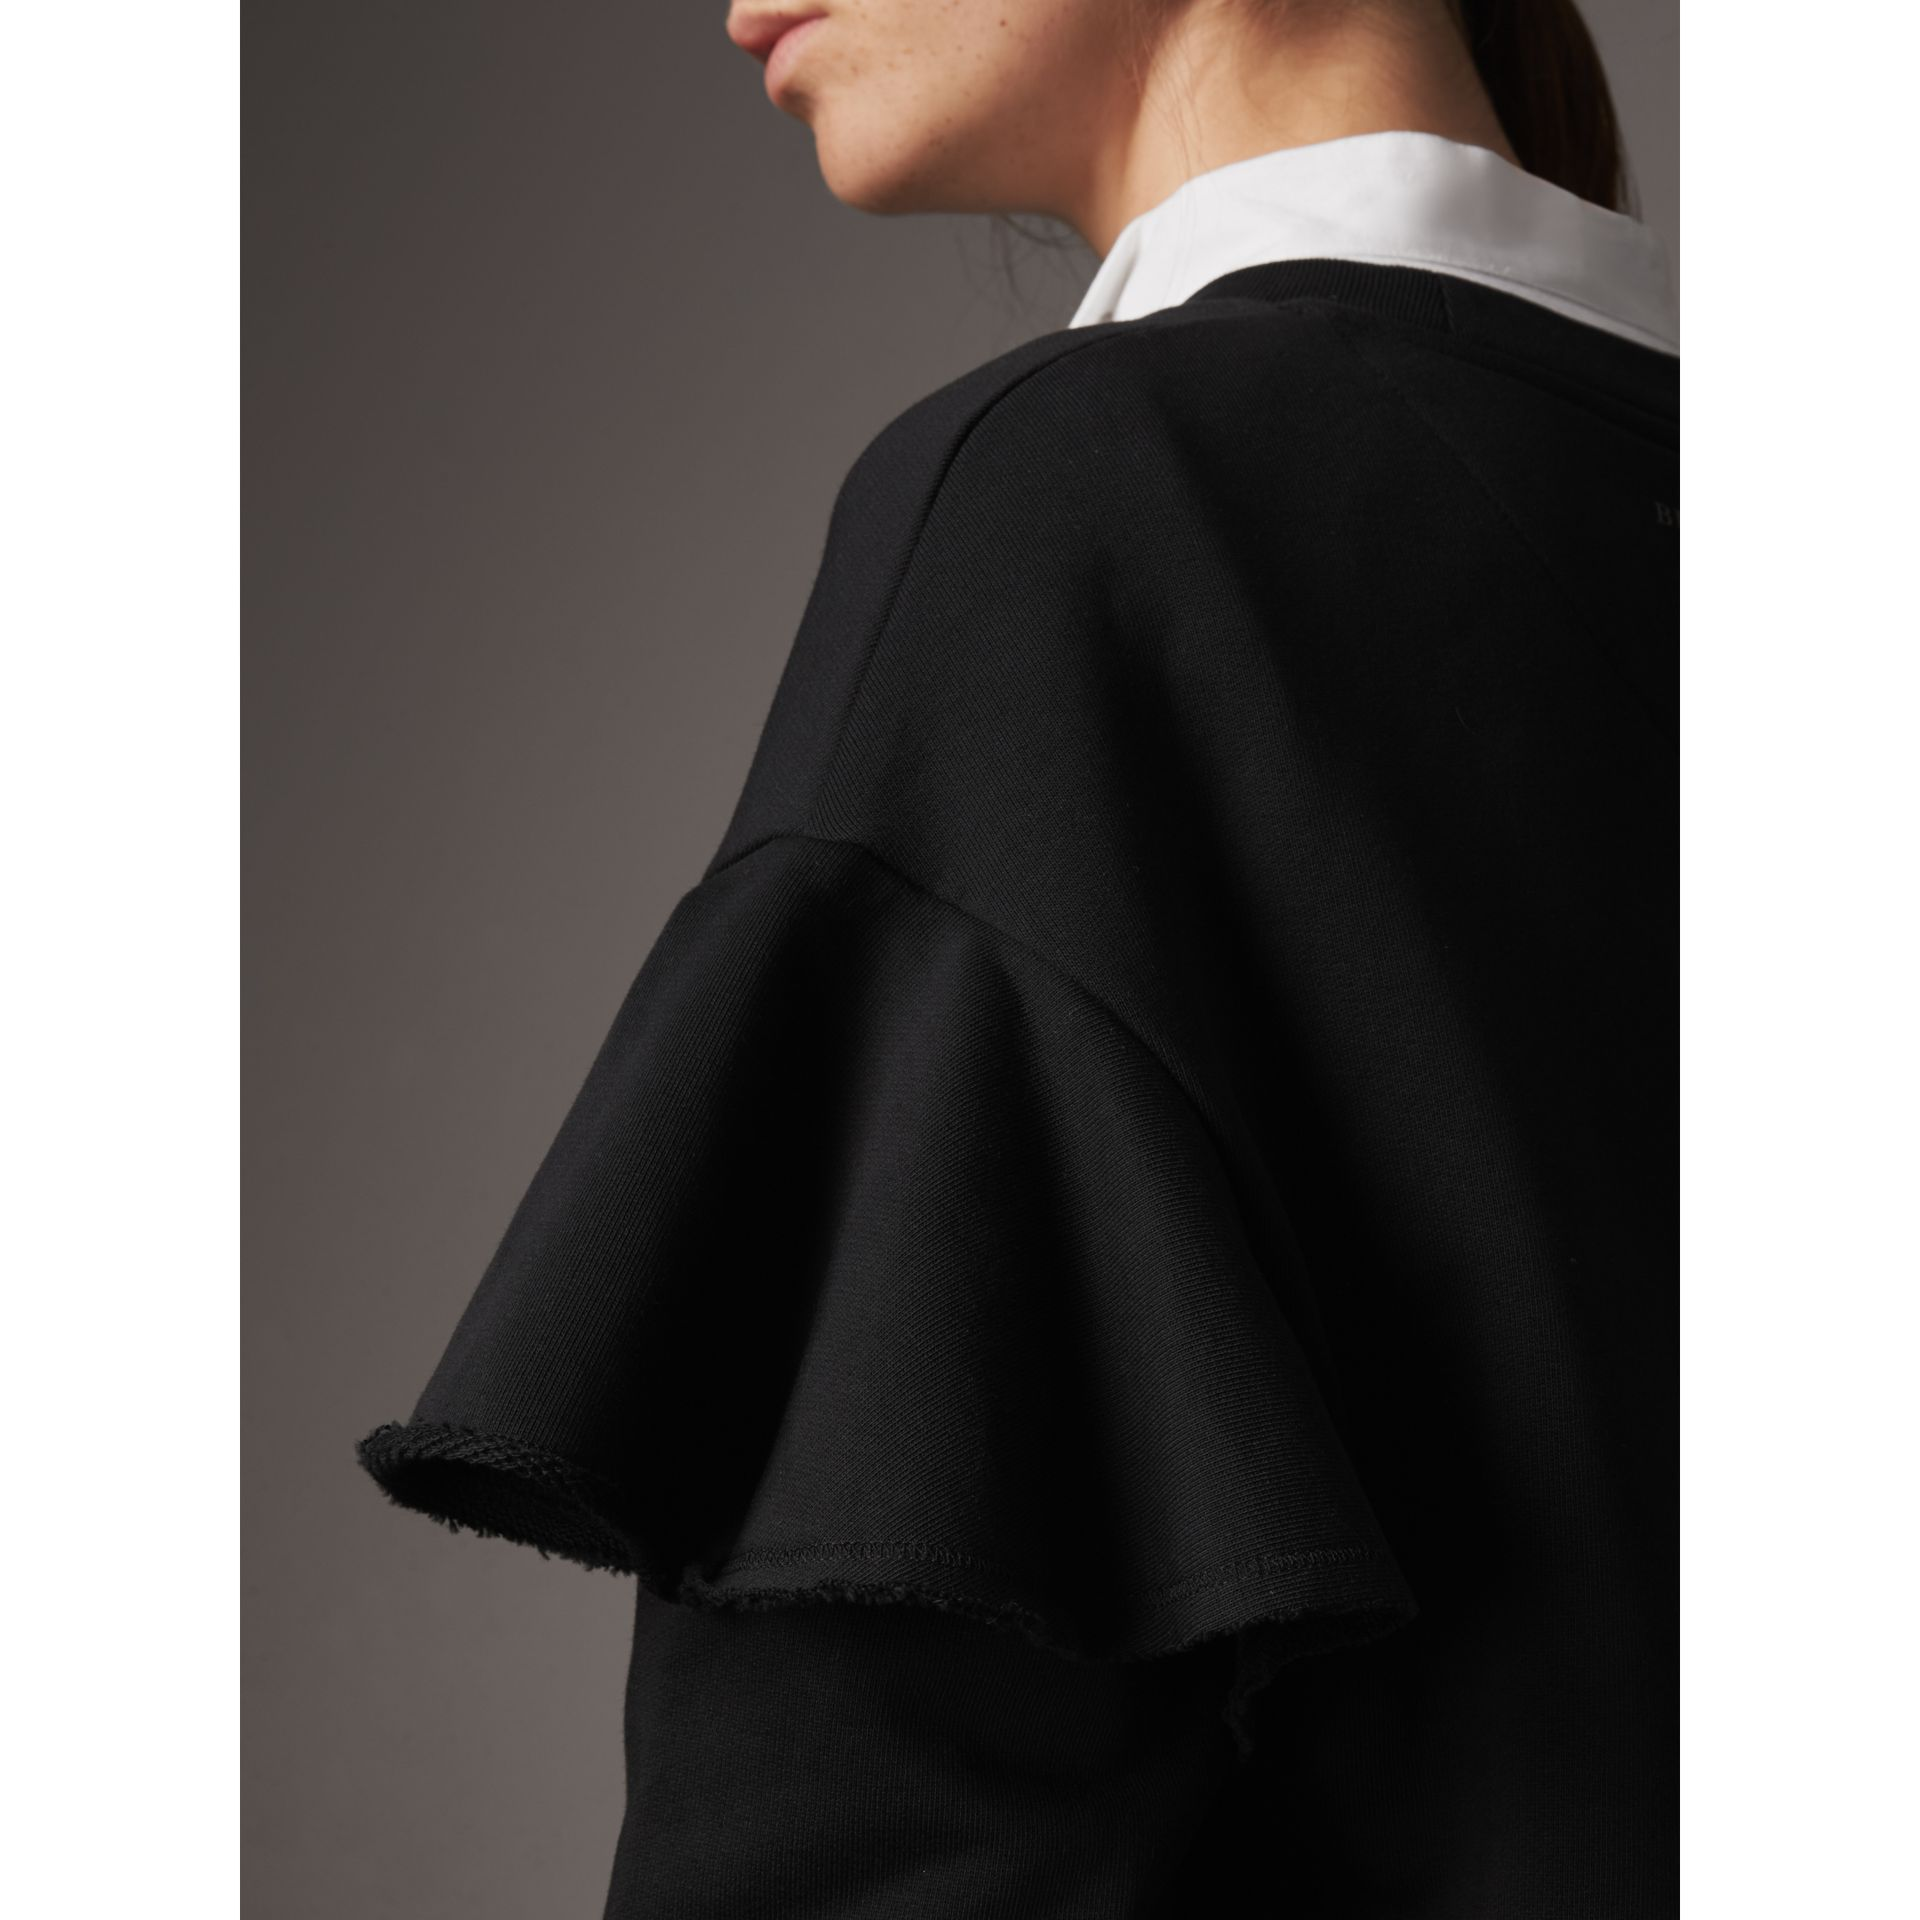 Robe pull en coton à manches à volants (Noir) - Femme | Burberry - photo de la galerie 2